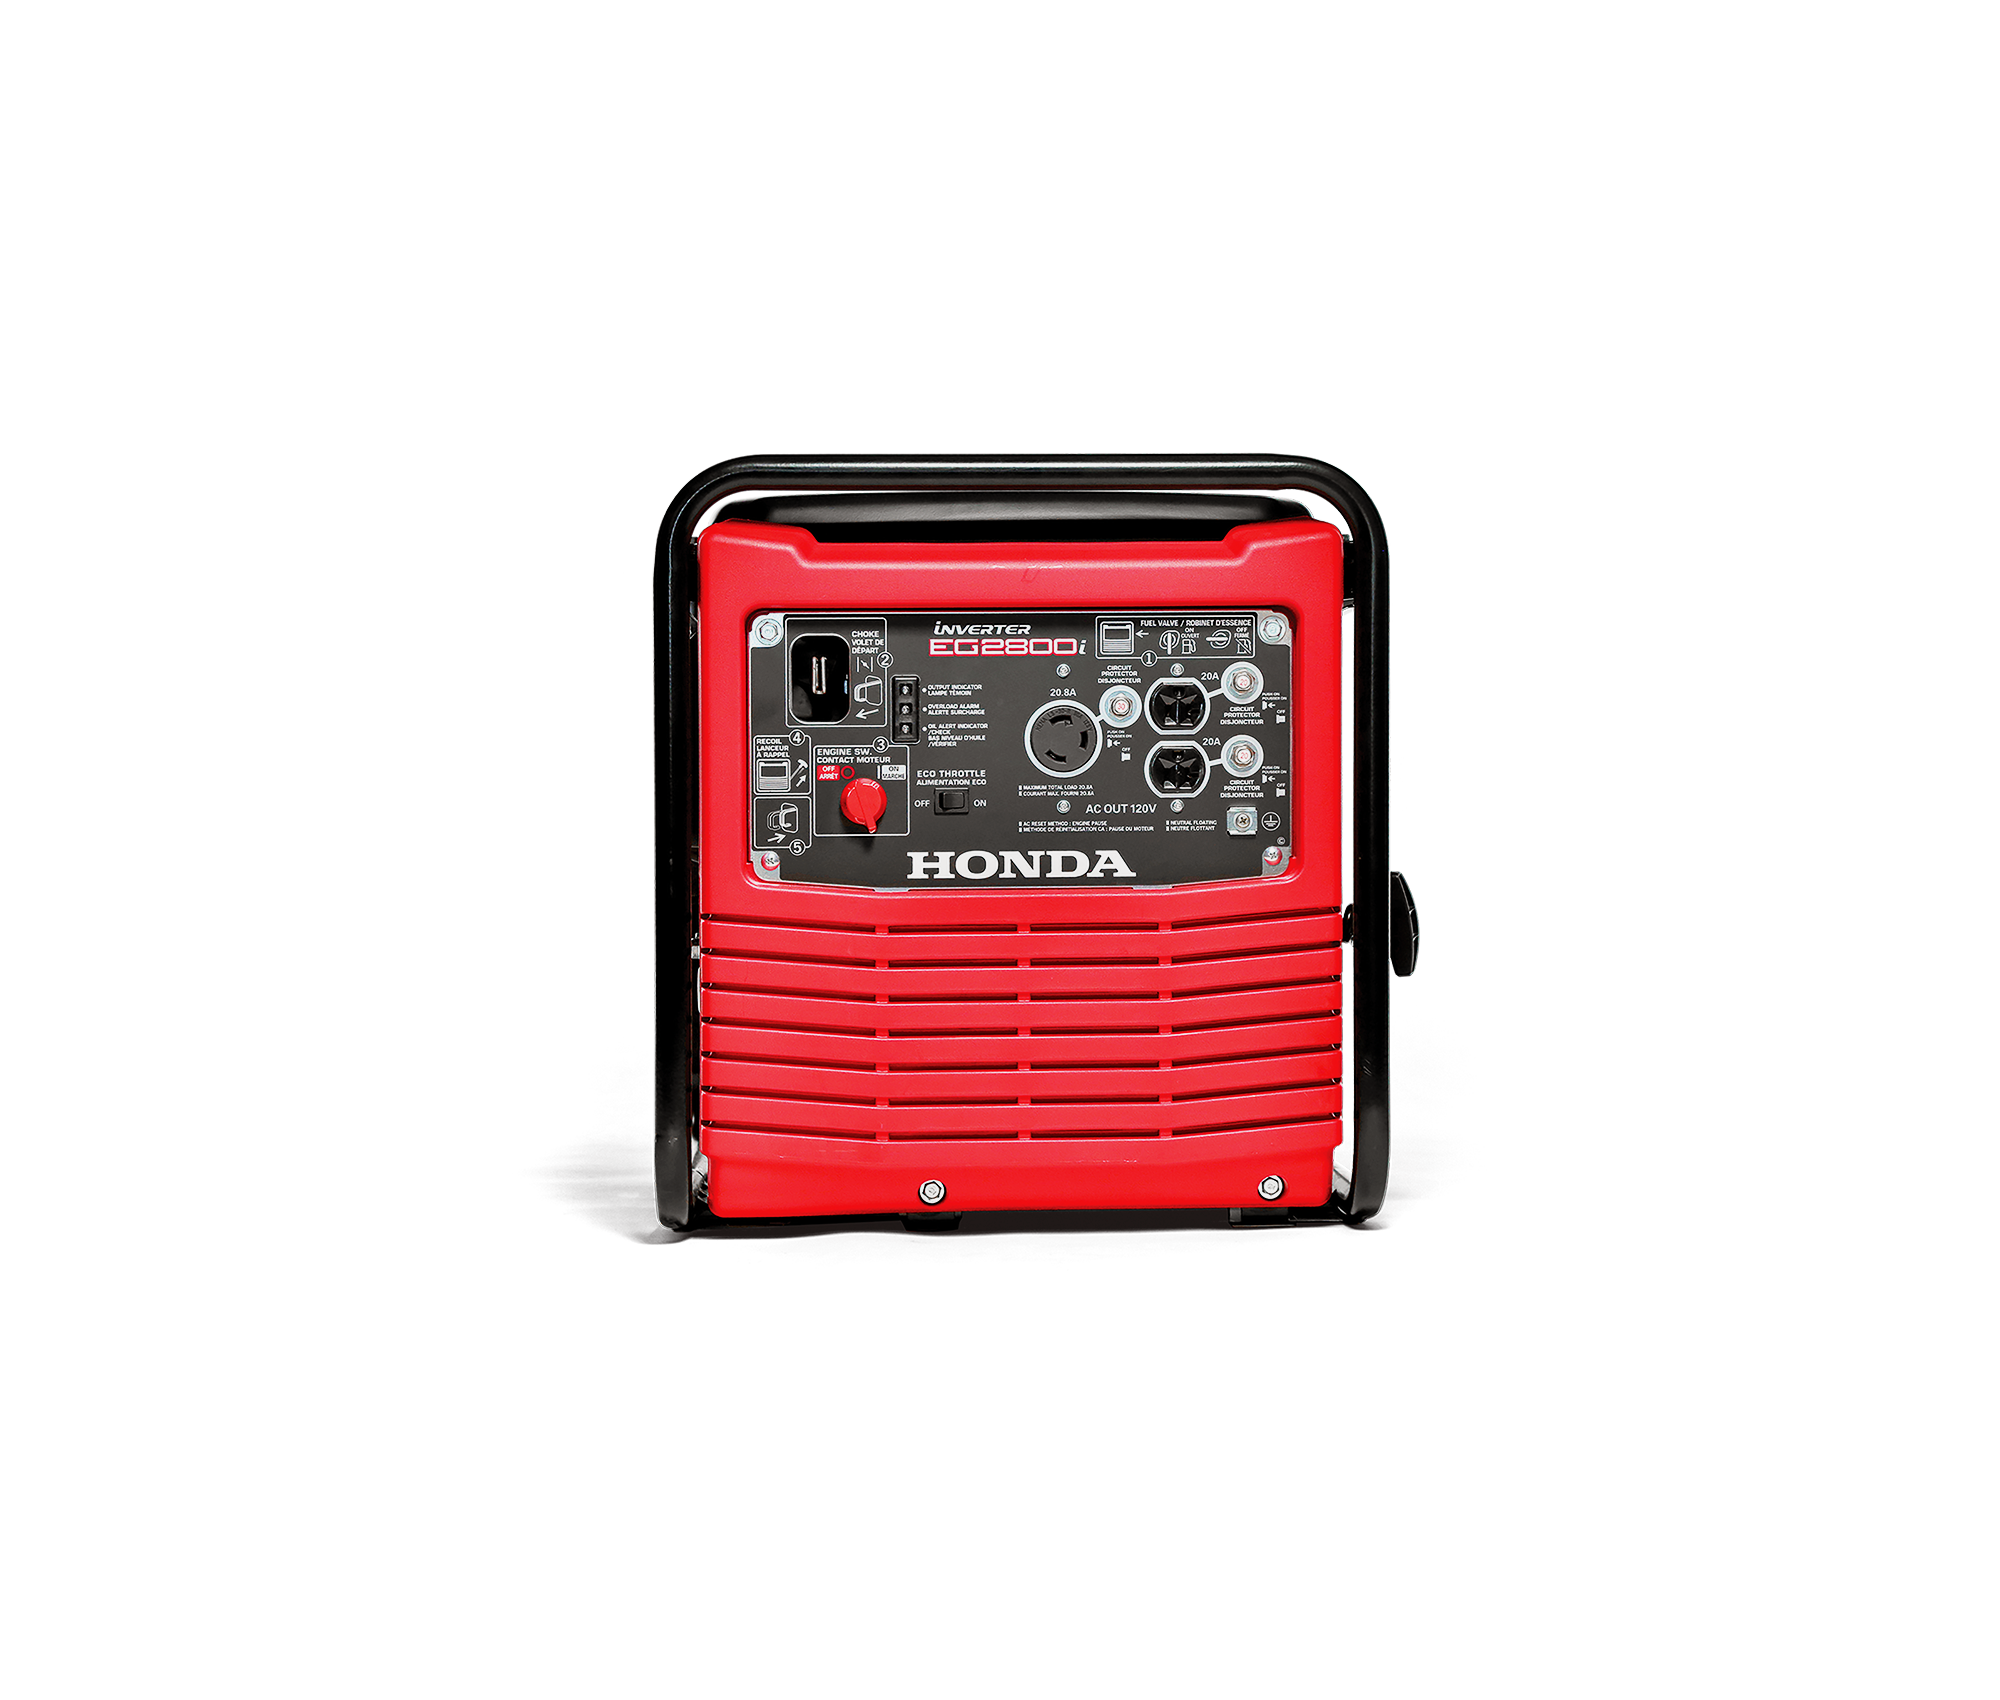 Image of the Inverter 2800i generator